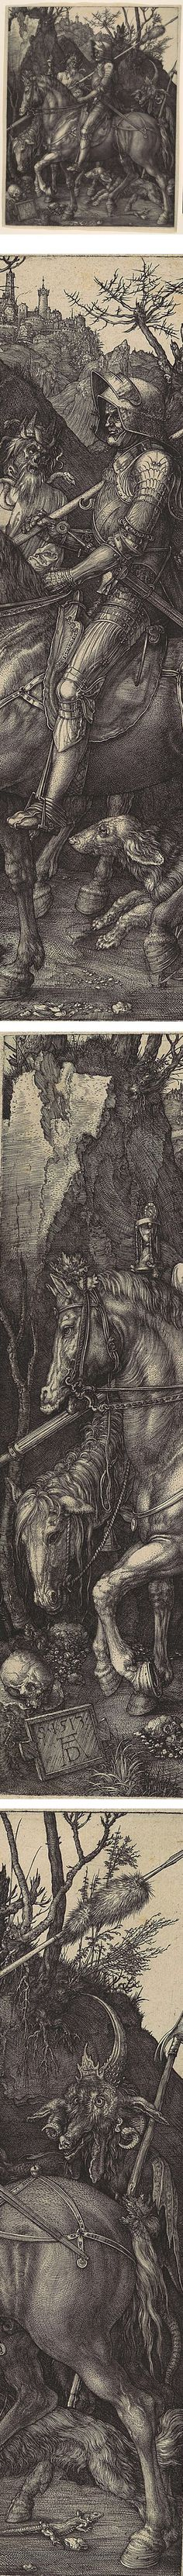 Eye Candy for Today: Durer's Knight, Death and the Devil